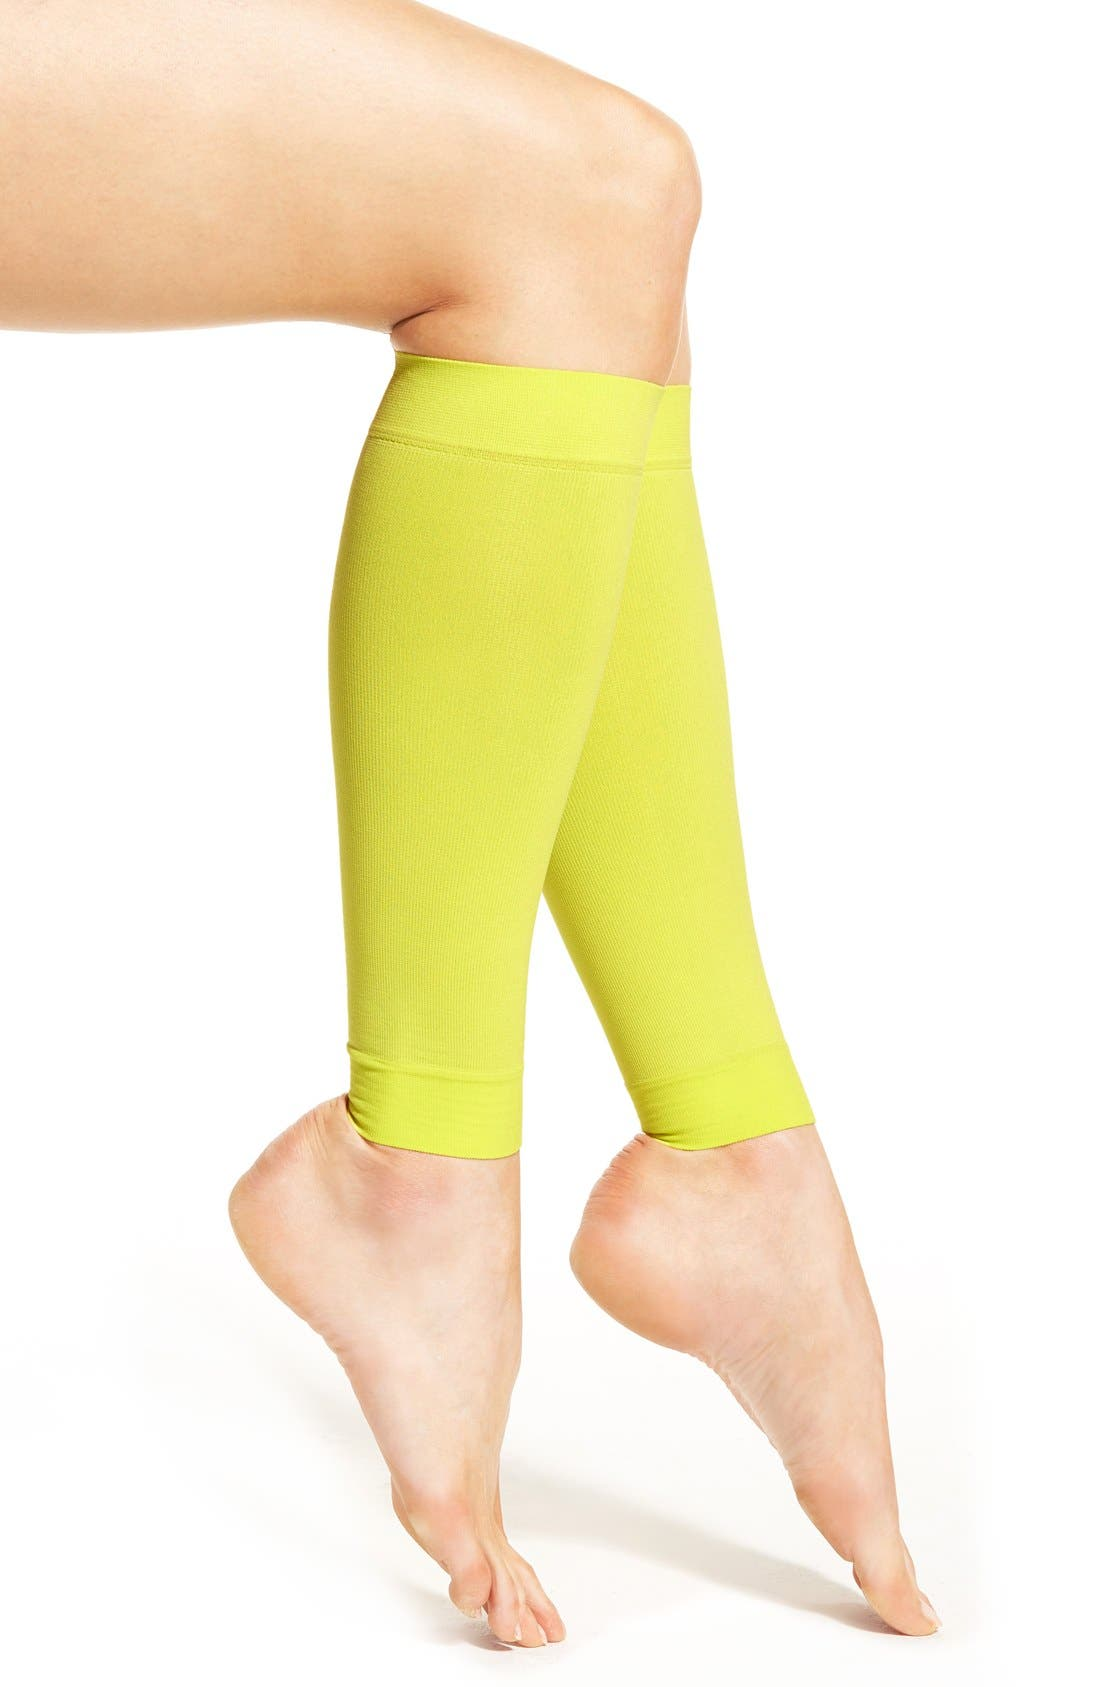 Graduated Compression Calf Sleeves,                             Main thumbnail 1, color,                             Limeade